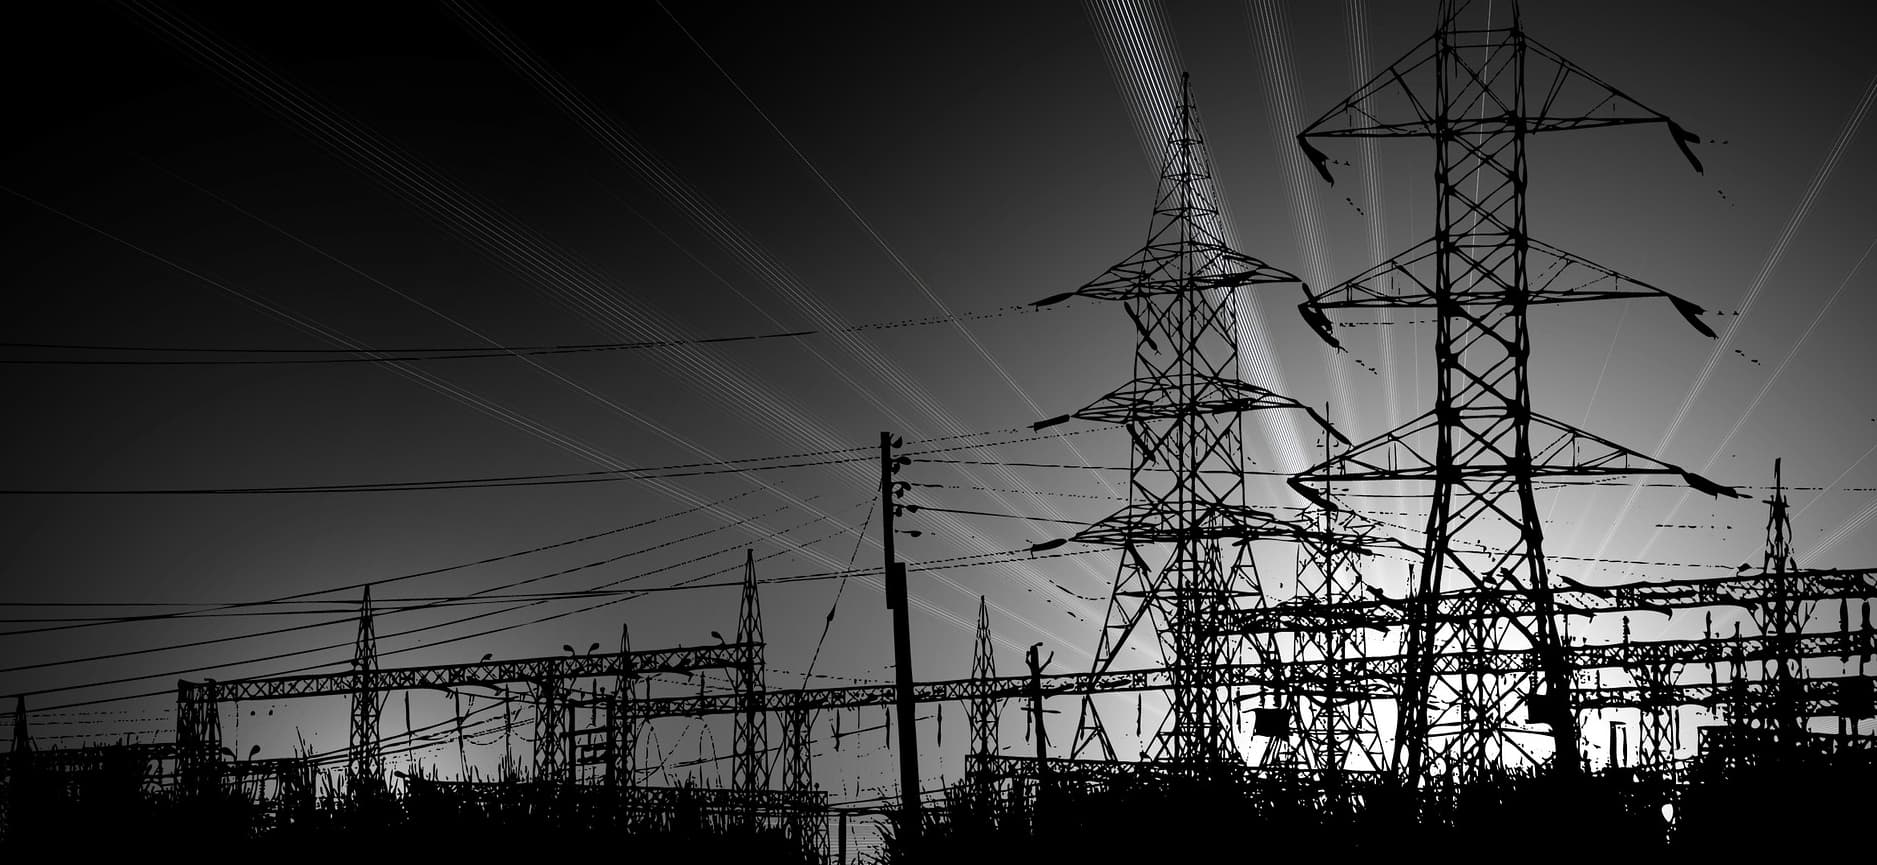 7 facts about Pakistan's energy crisis ─ and how you can help end it